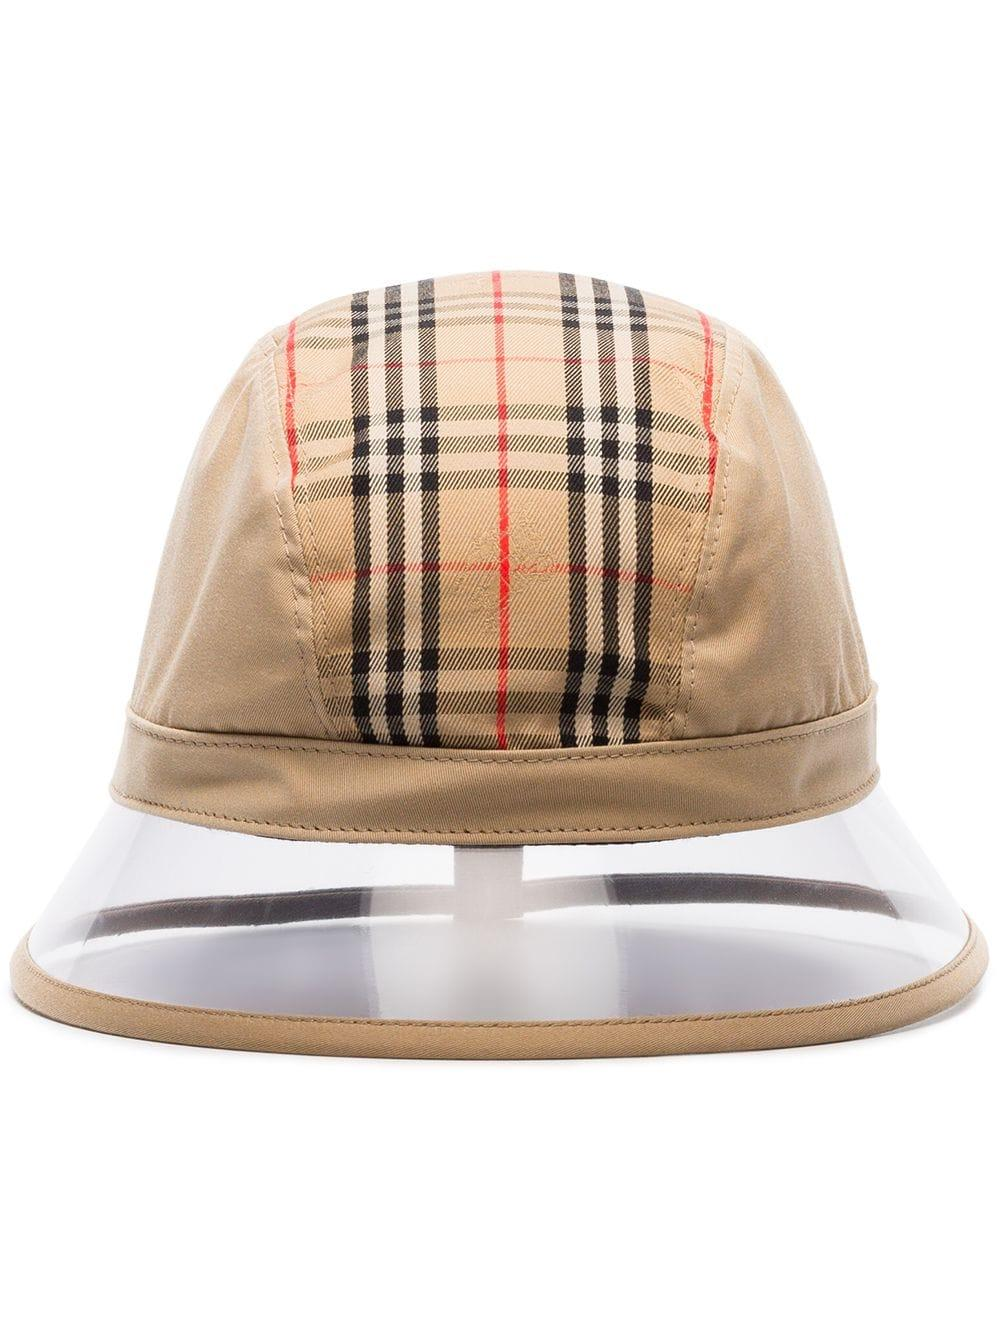 92cf11c912b Burberry Vintage Checked Bucket Hat - Nude   Neutrals